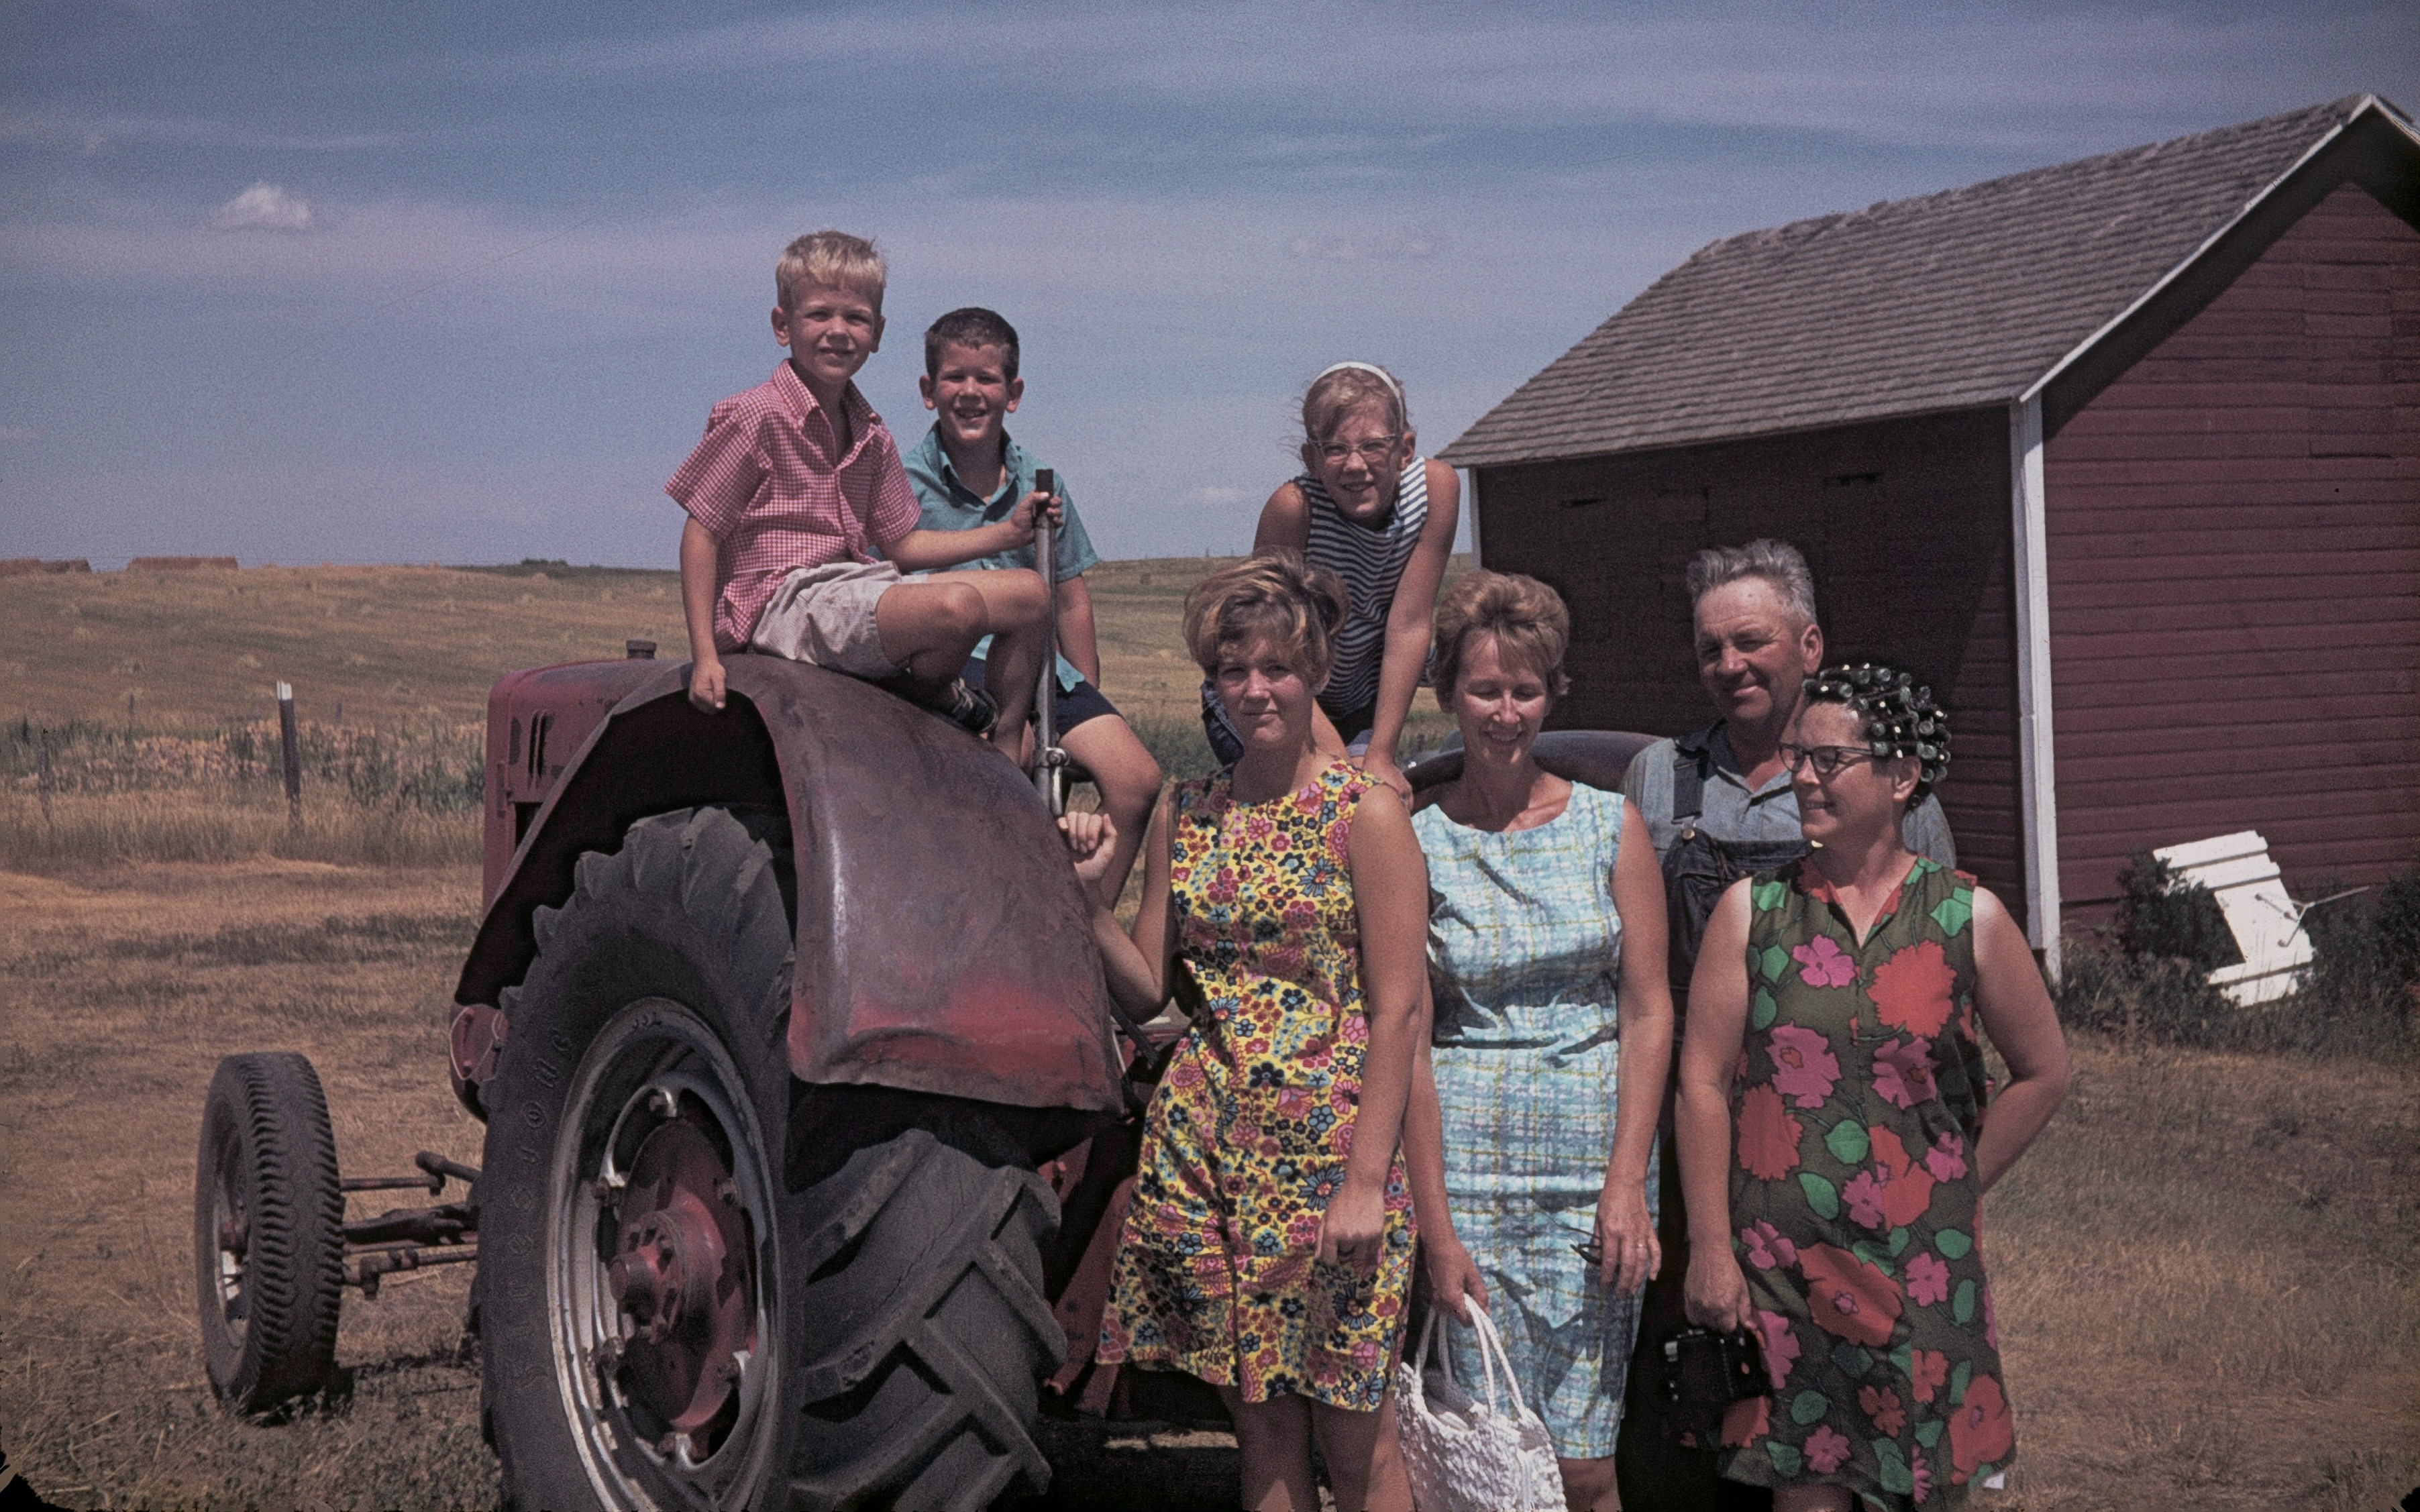 Image: A family picture with a tractor.